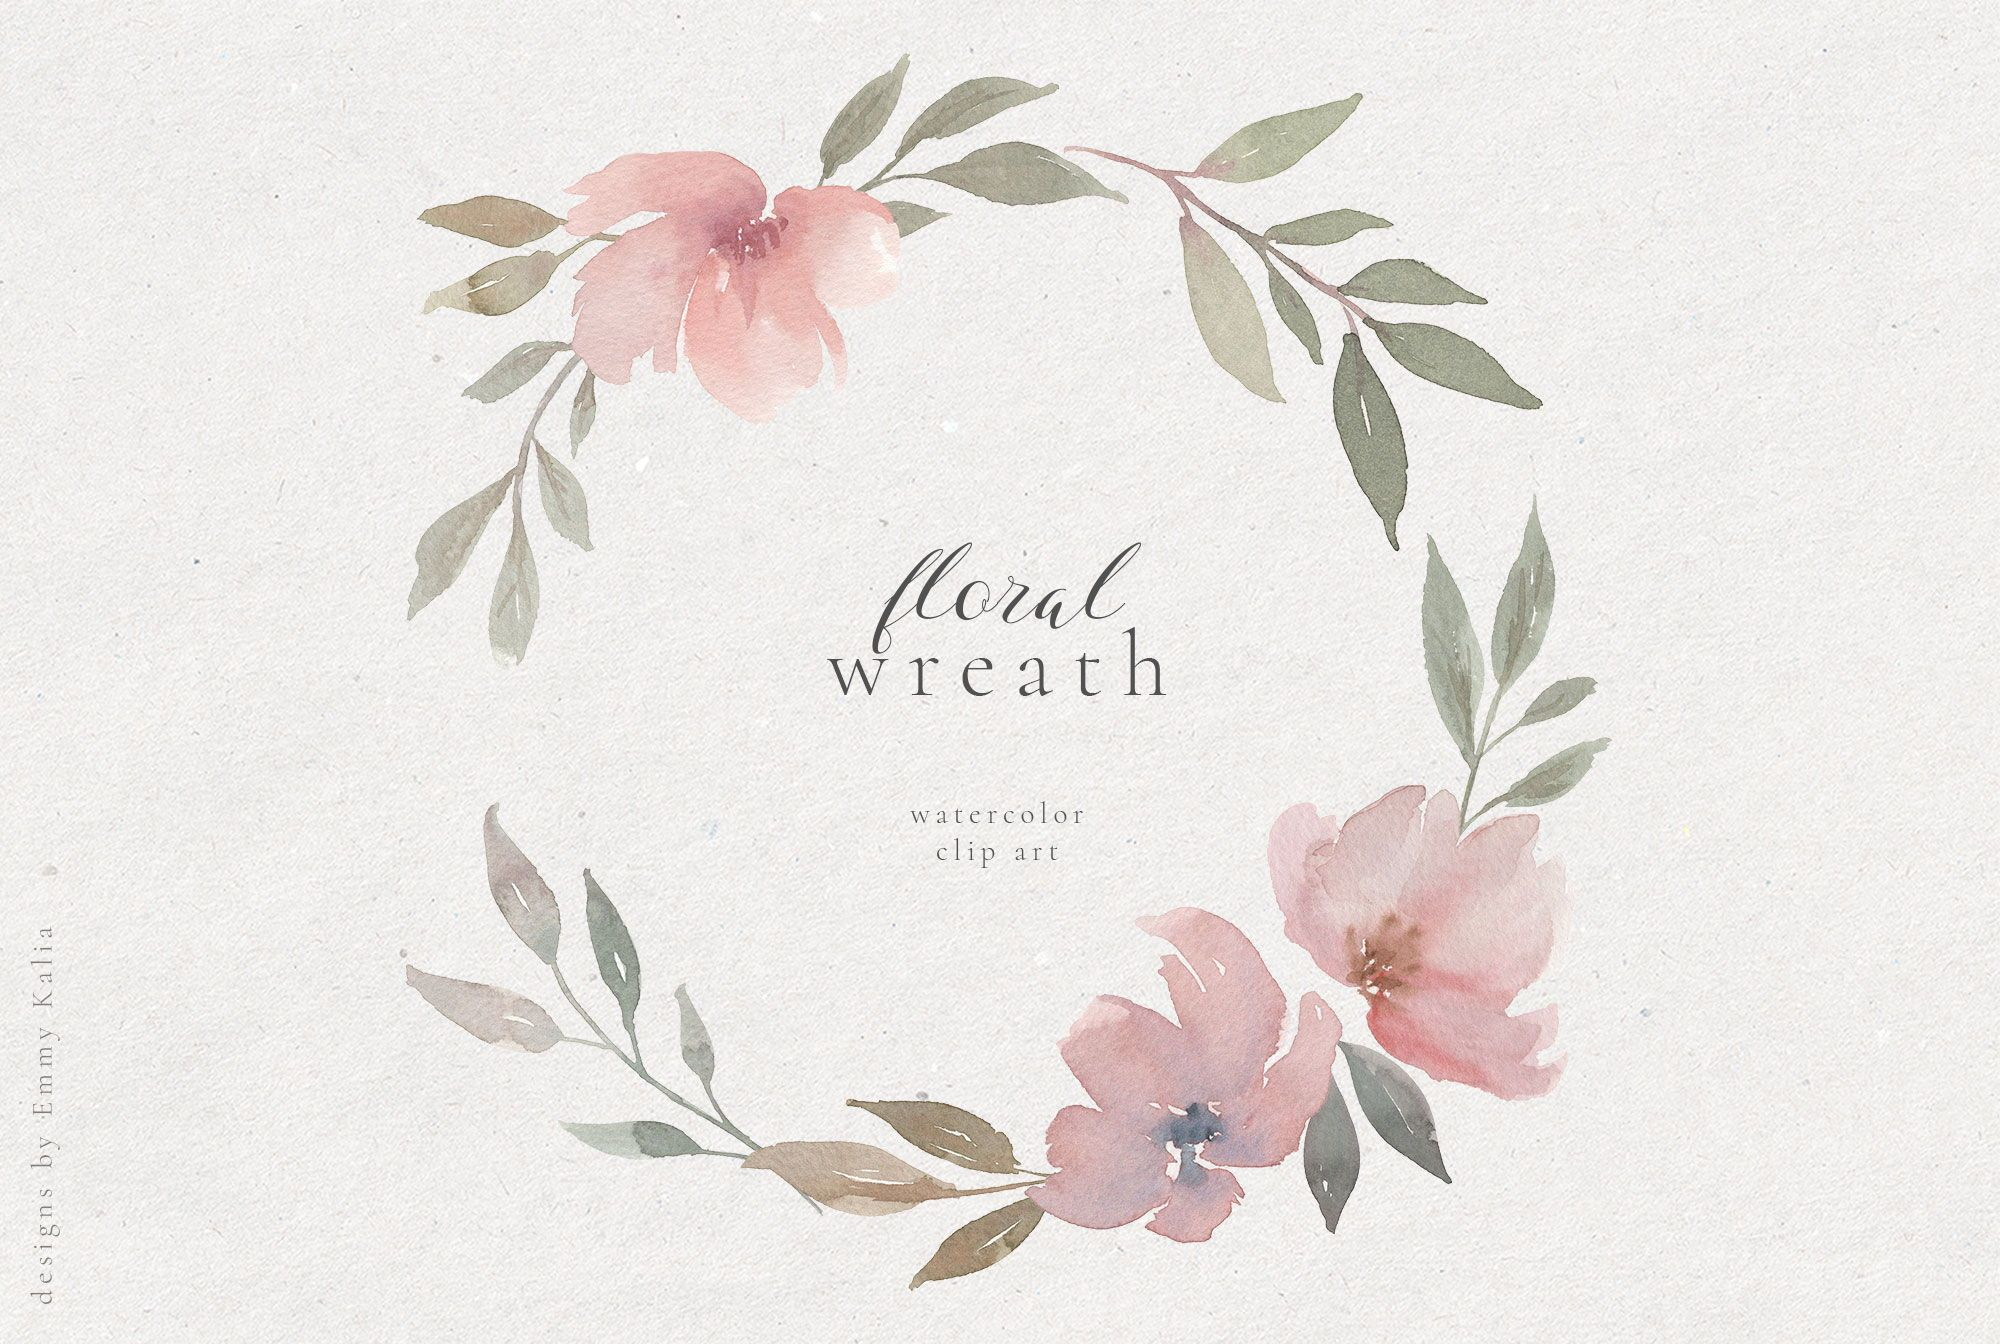 Hand Painted Floral Wreath Watercolor Clip Art Flower Etsy In 2020 Painted Floral Wreath Floral Wreath Watercolor Wreath Watercolor